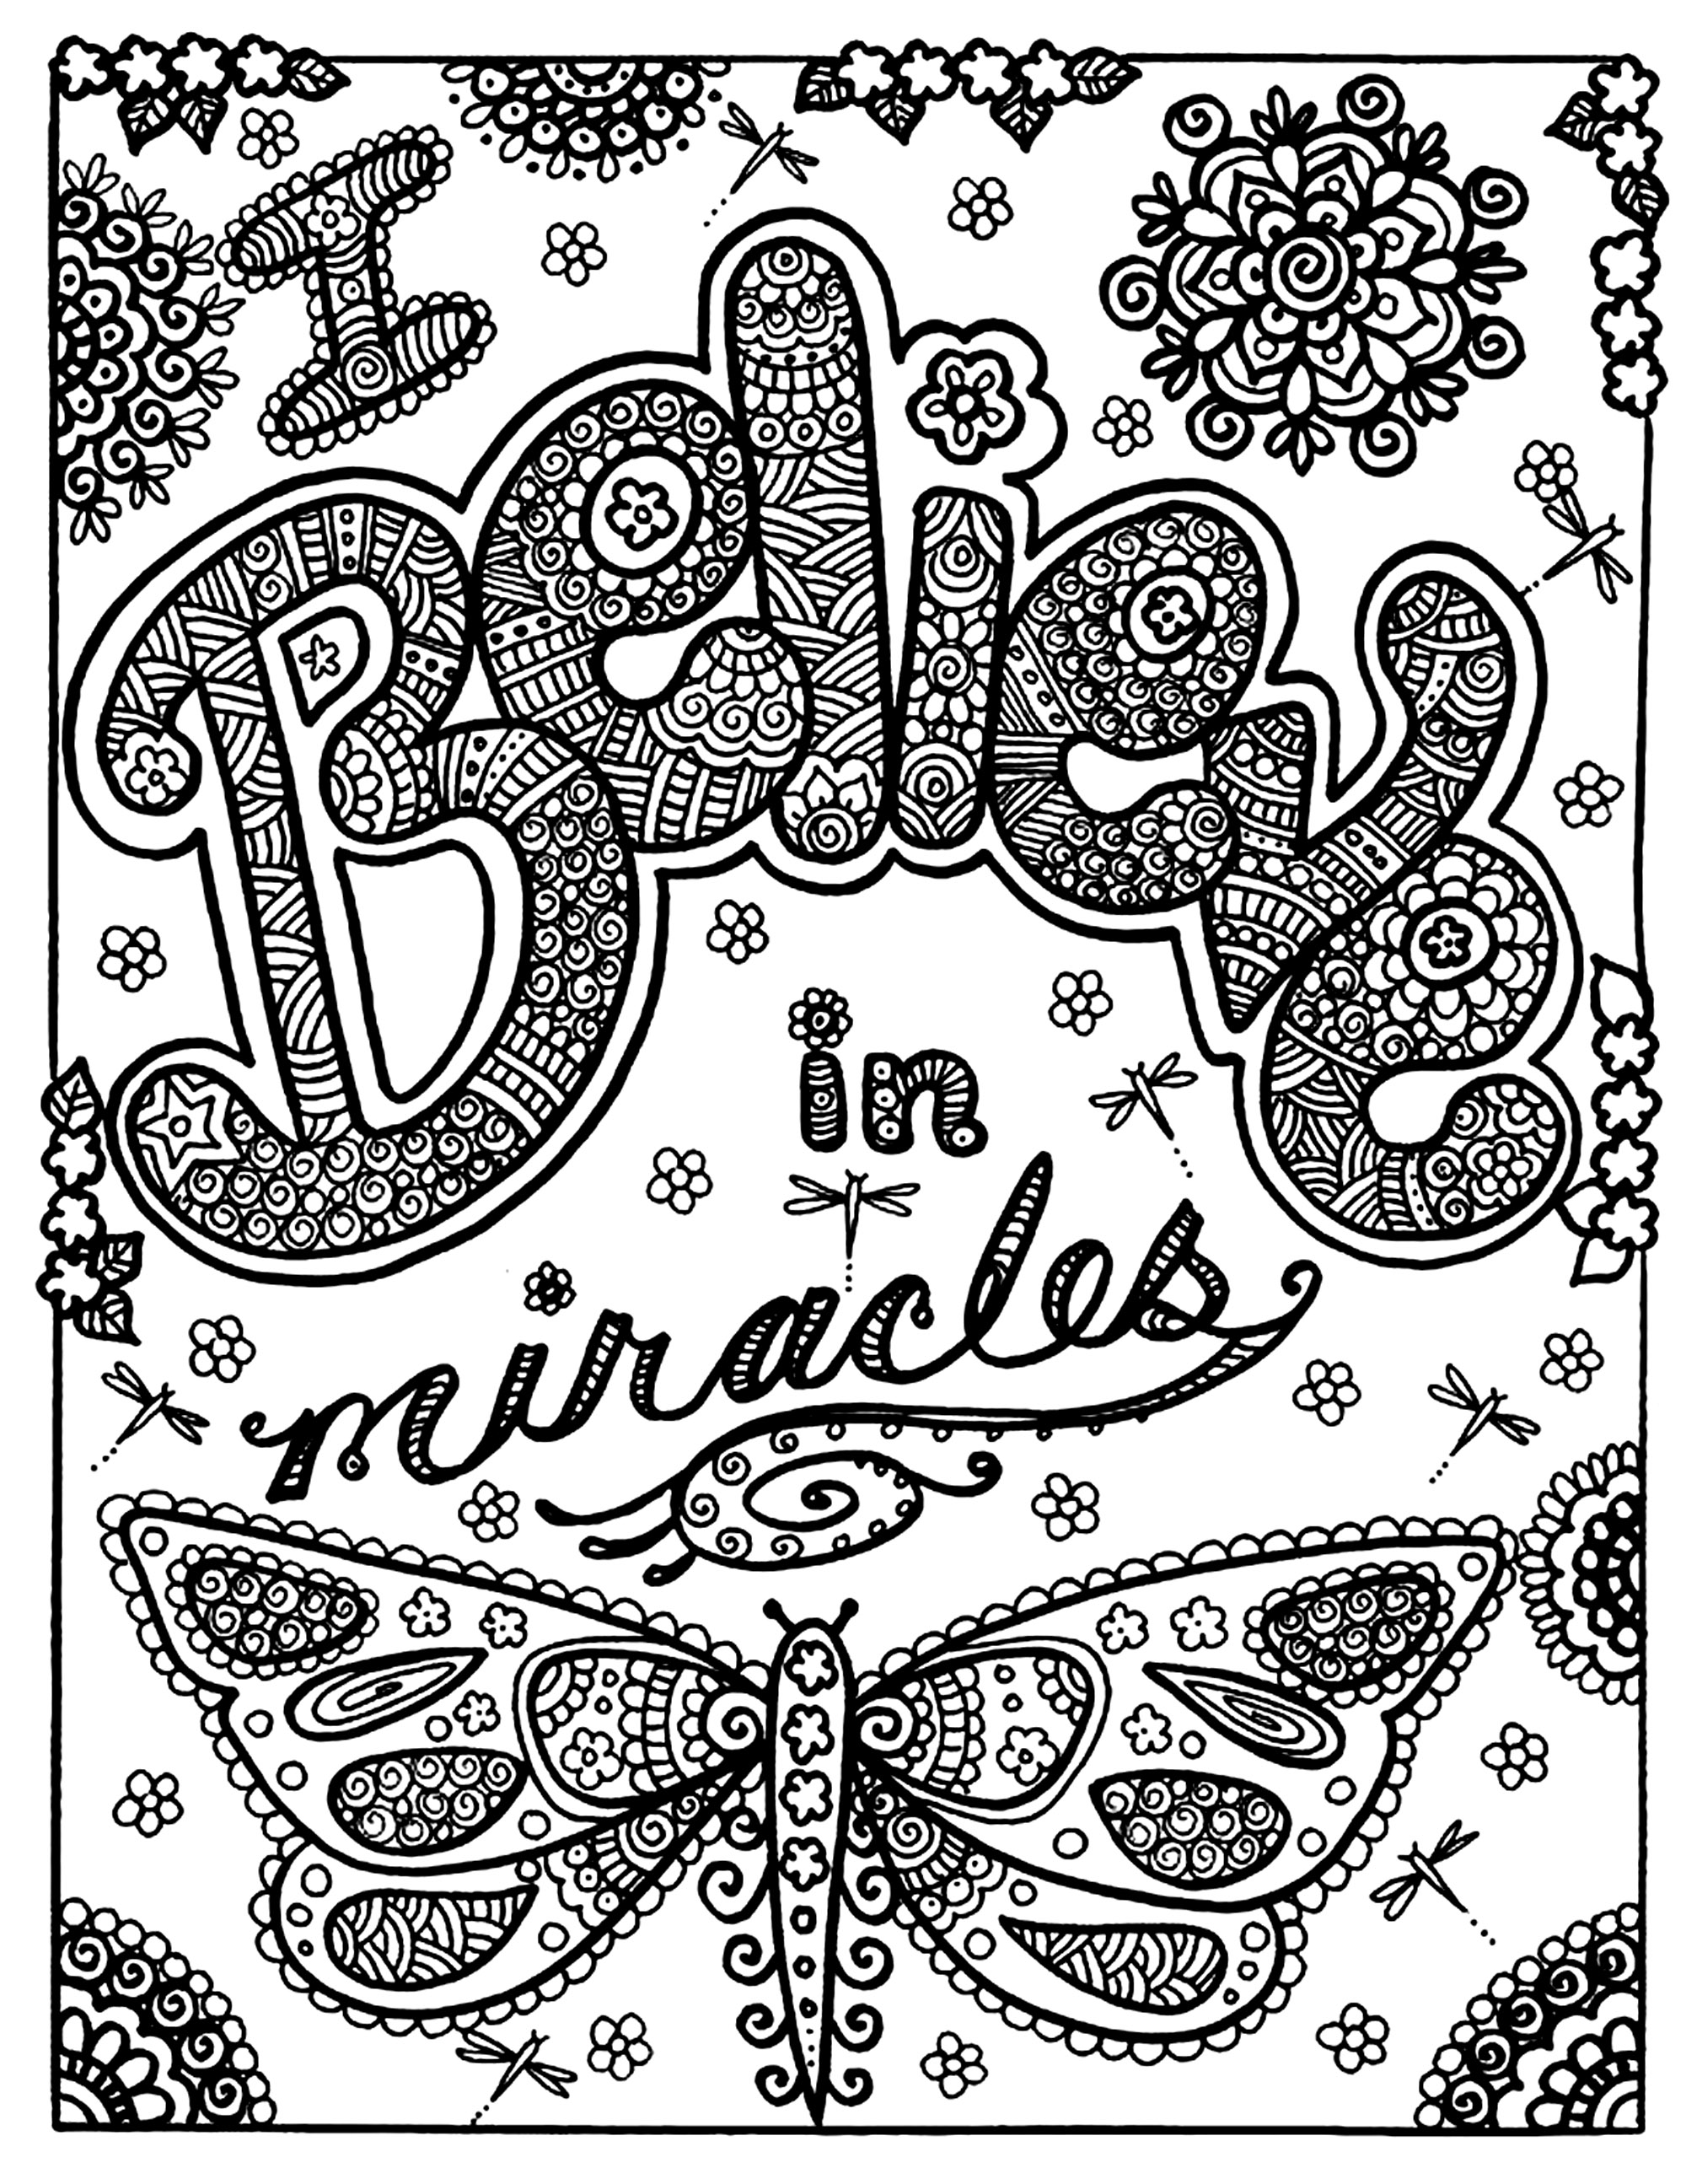 Magnificient Drawing With The Text I Believe In Miracles And A Beautiful Butterfly